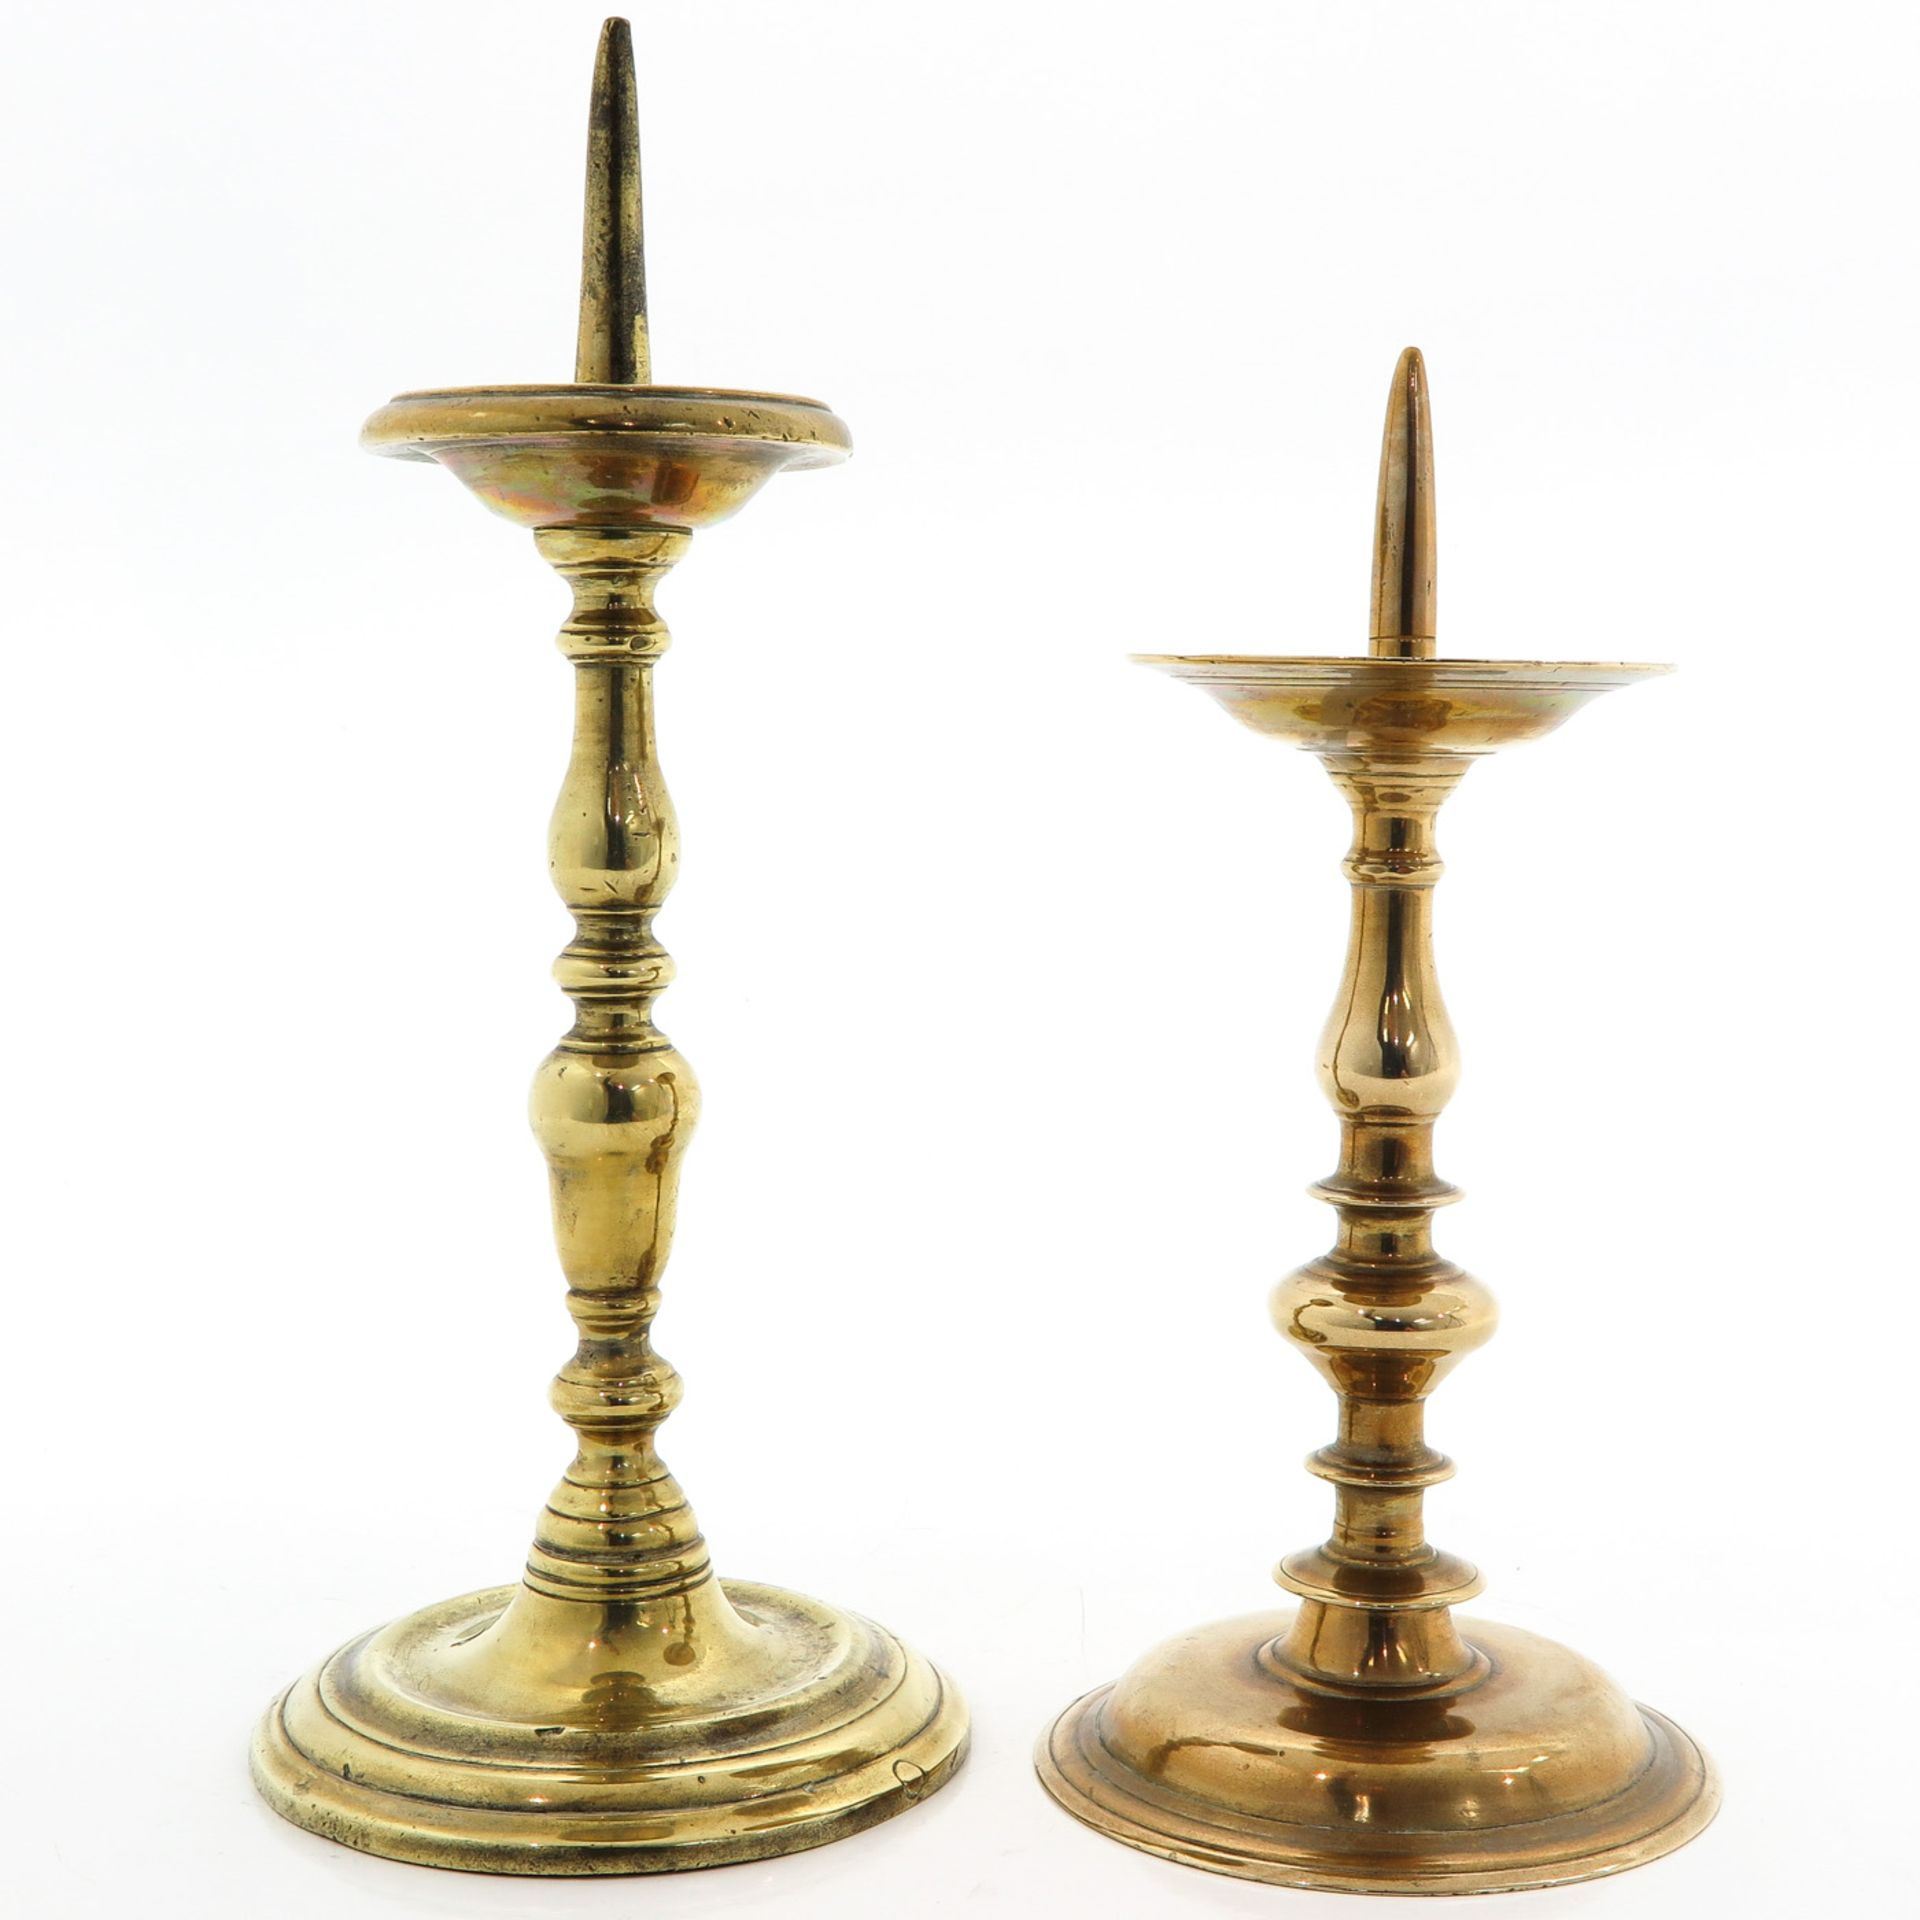 Los 1073 - Two Copper Candlesticks